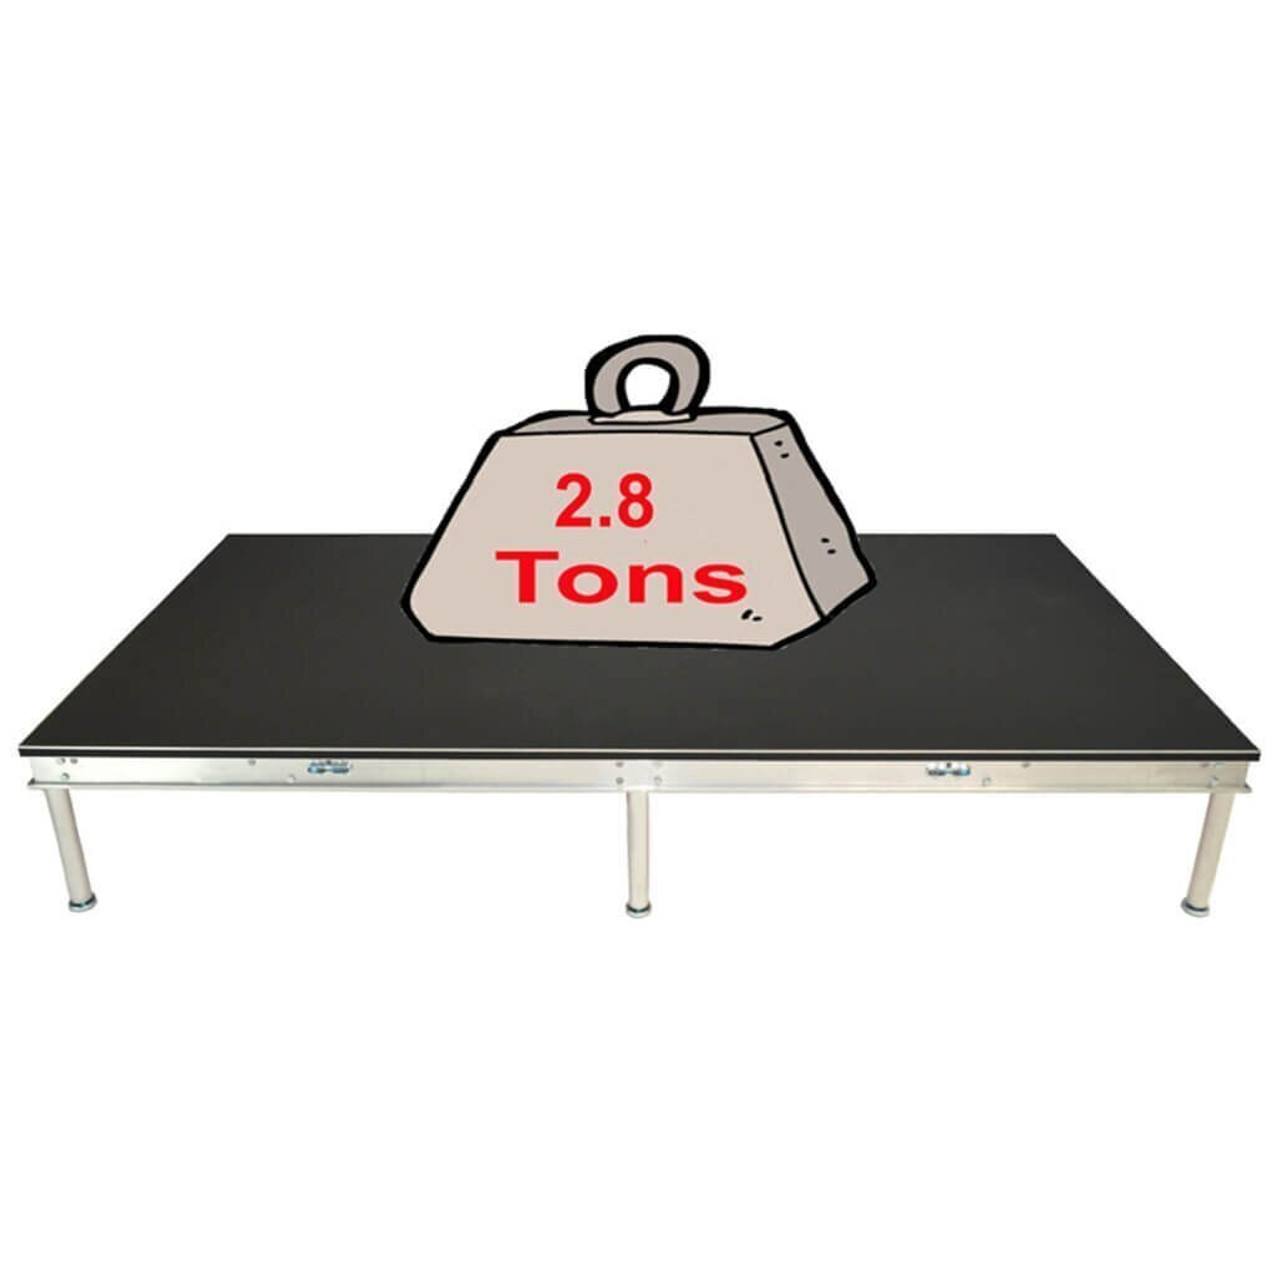 Top rated Quik Stage 8' x 12' High Portable Stage Package with Black Polyvinyl Non-Skid Surface. Additional Heights and Surfaces Available - Holds 2.8 tons per 4 x 8 or 1.4 tons per 4 x 4 when spread out evenly